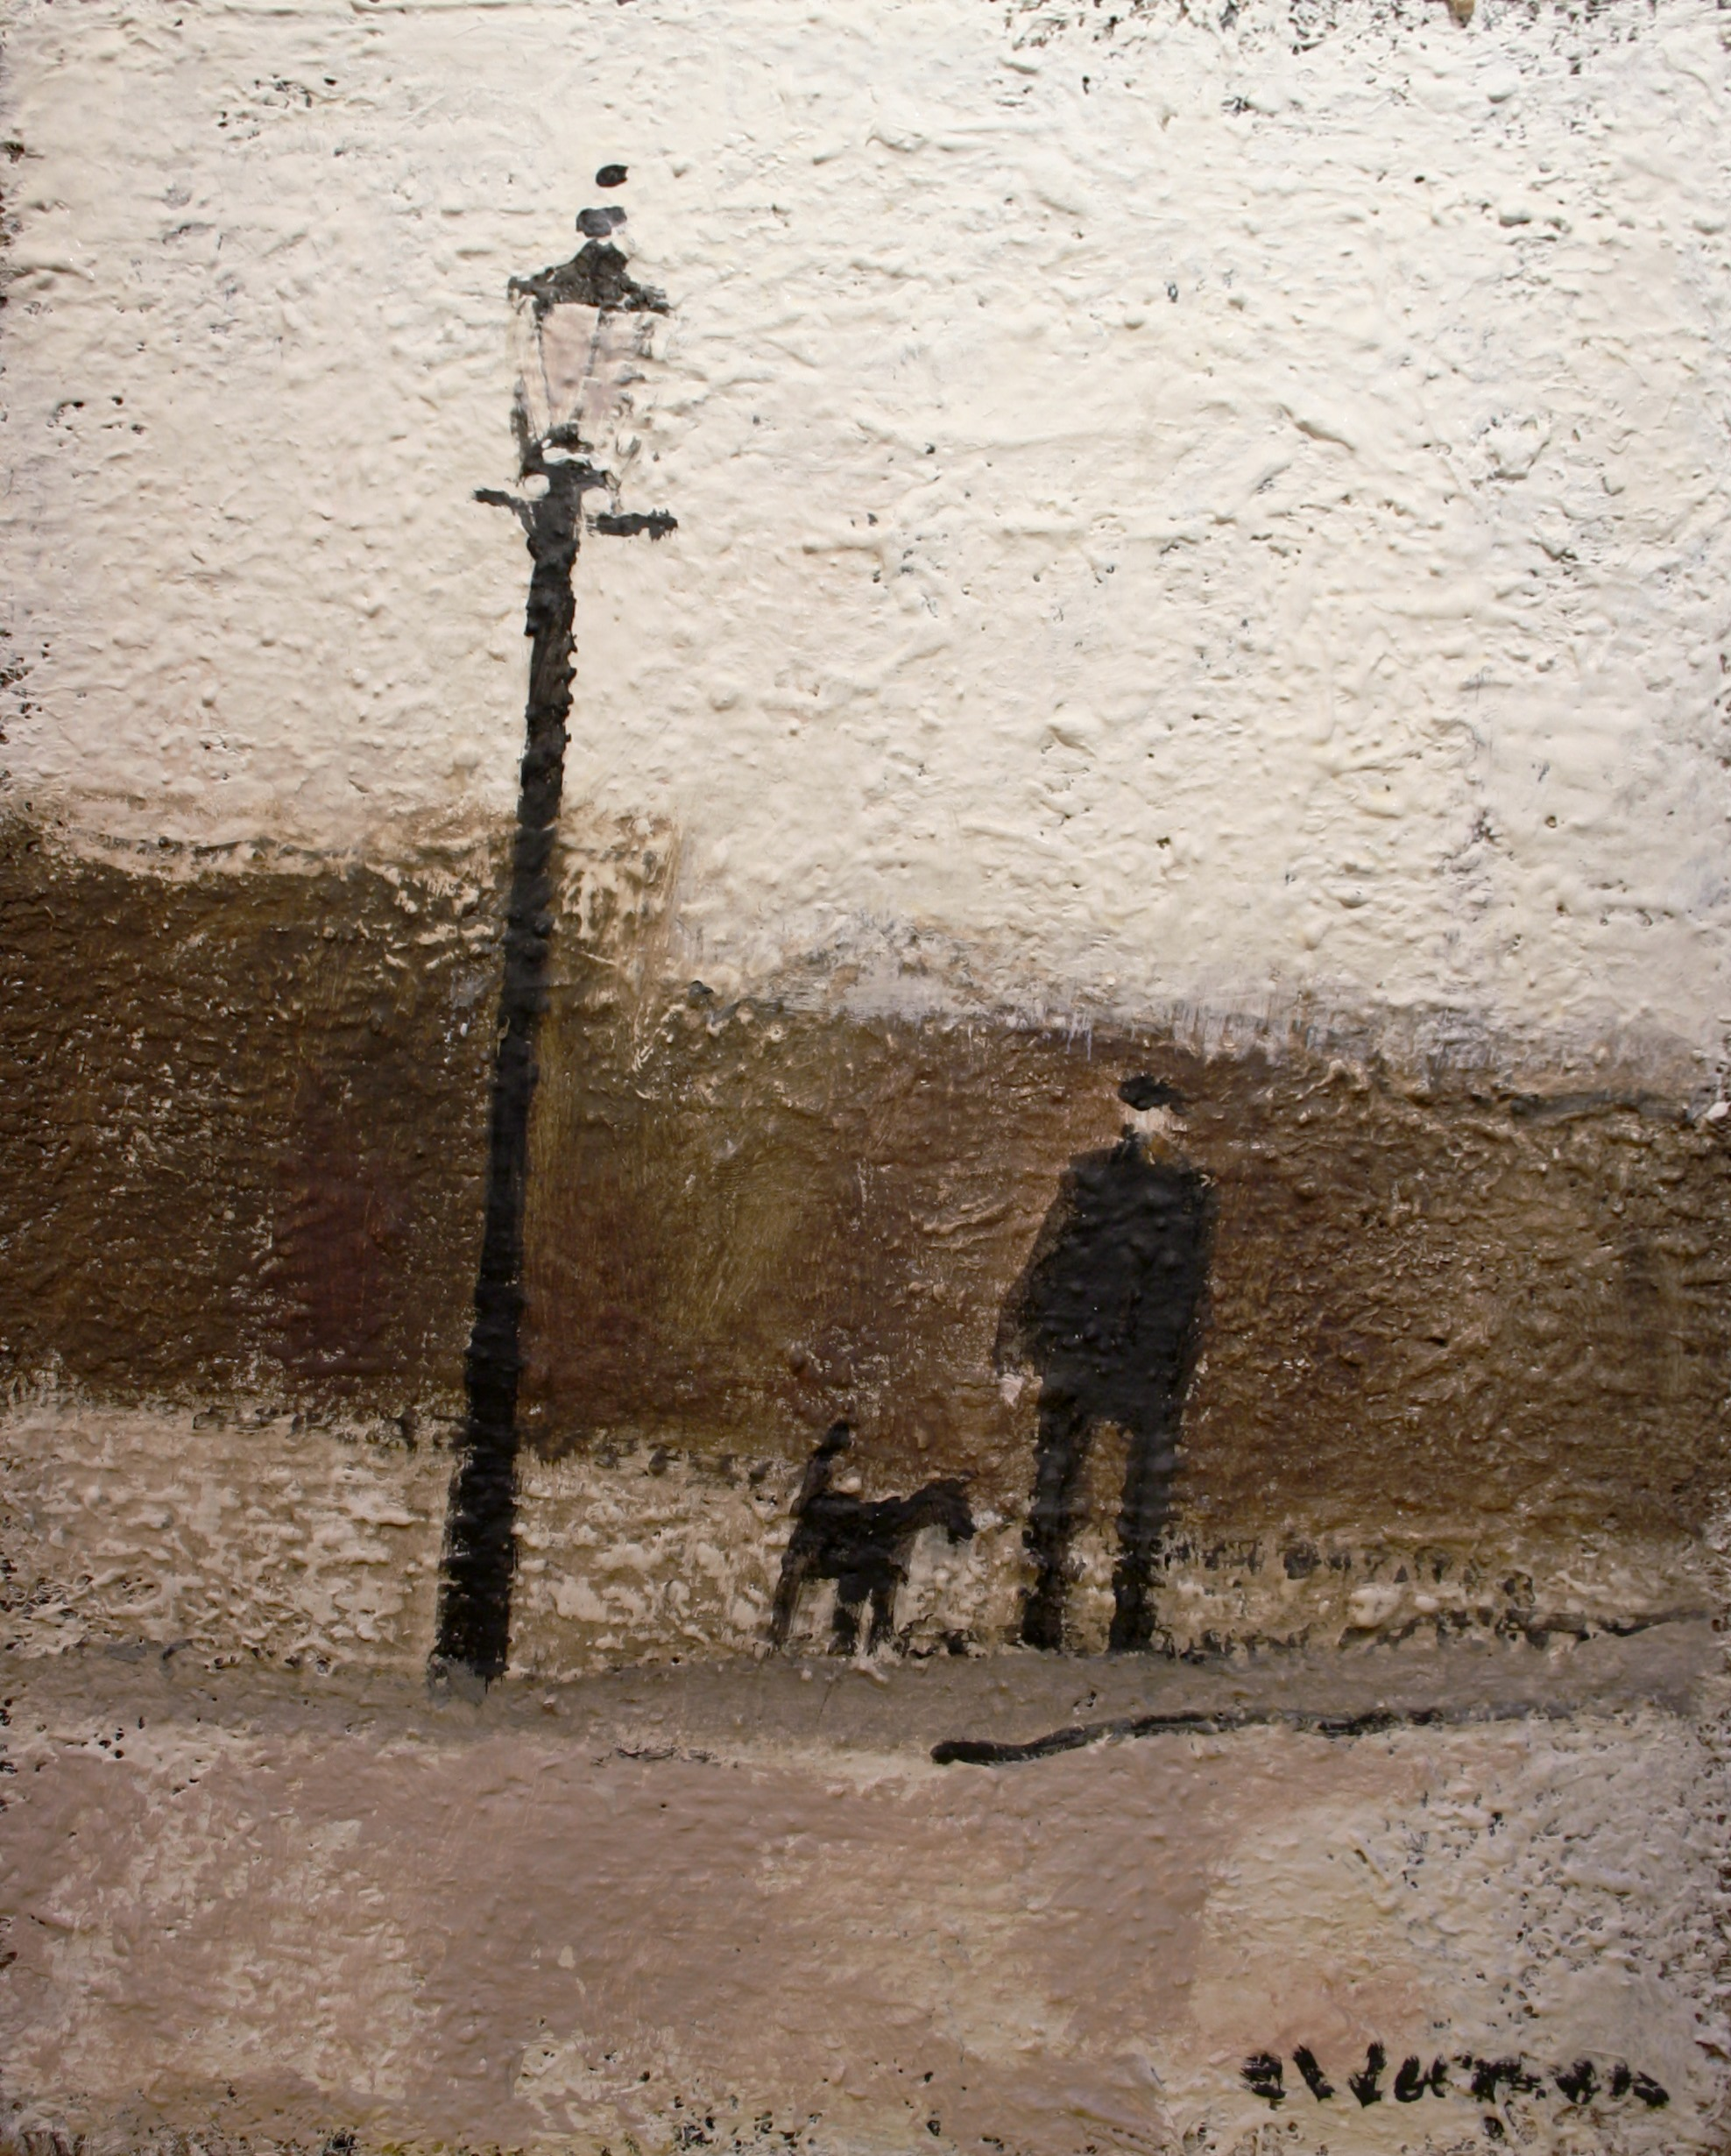 david alderman Lamp Post 16ins x 13ins oil 595